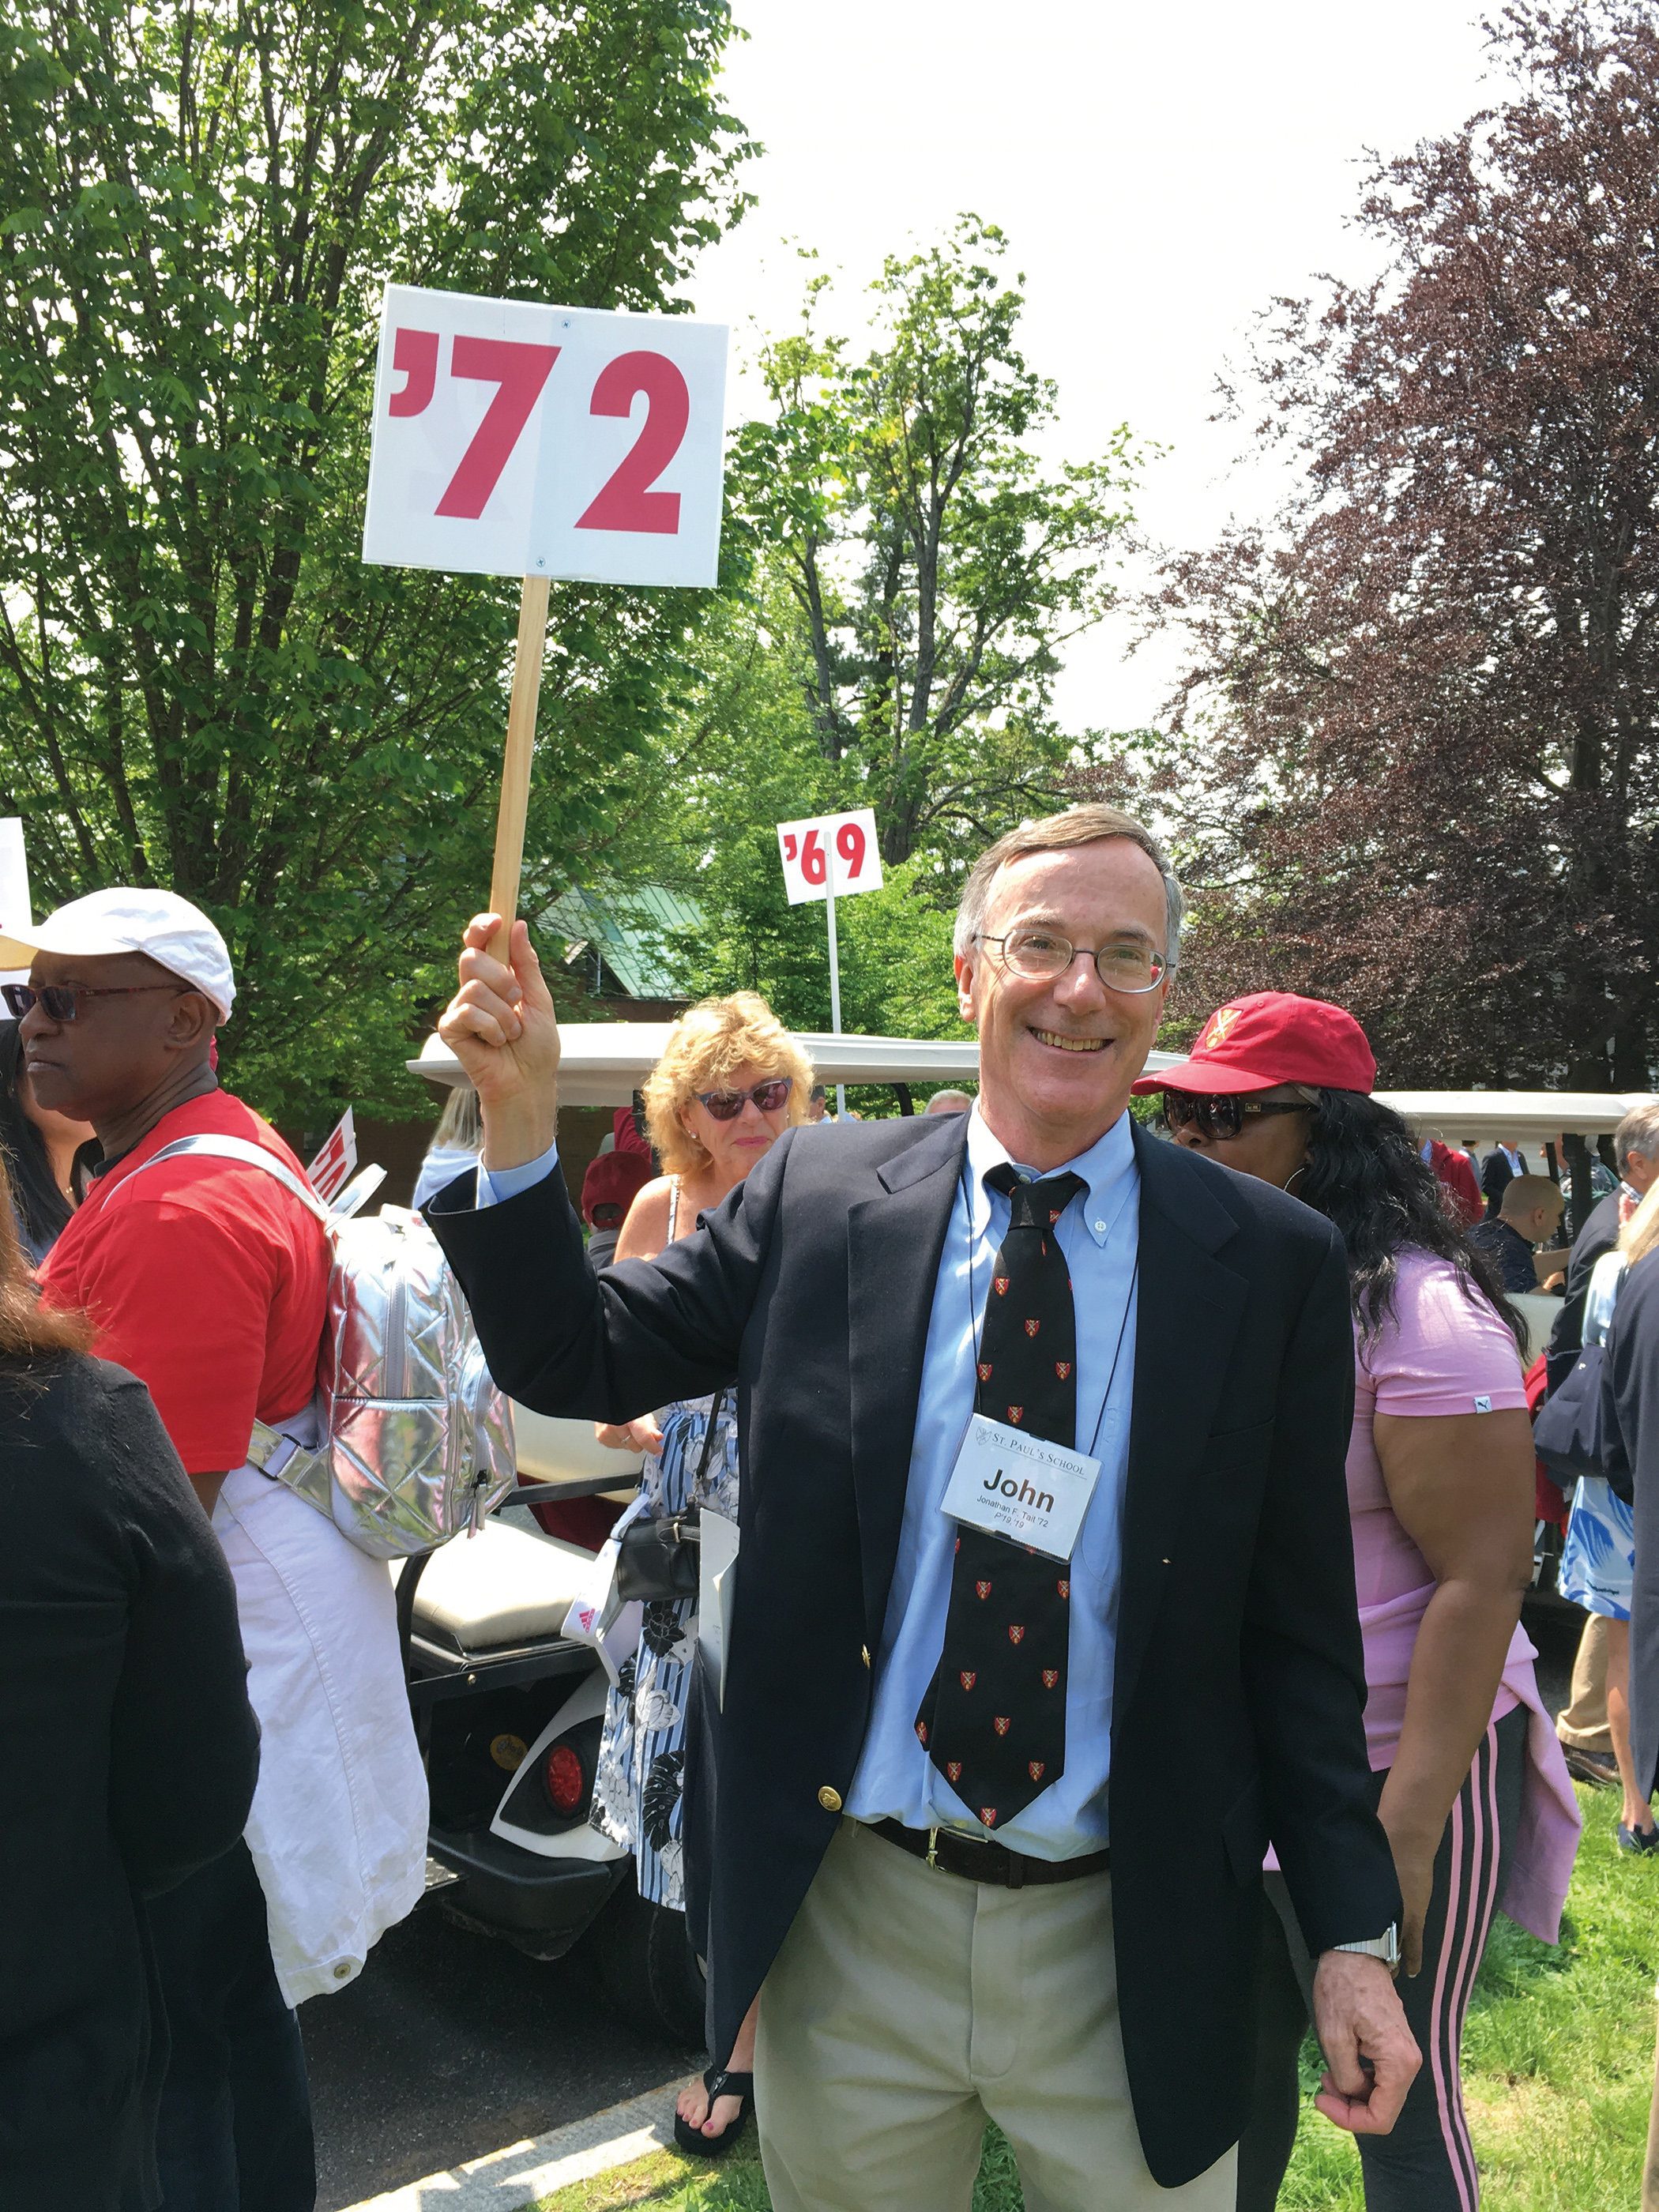 John Tait '72 representing the Form of 1972 at the 2019 Alumni Parade.